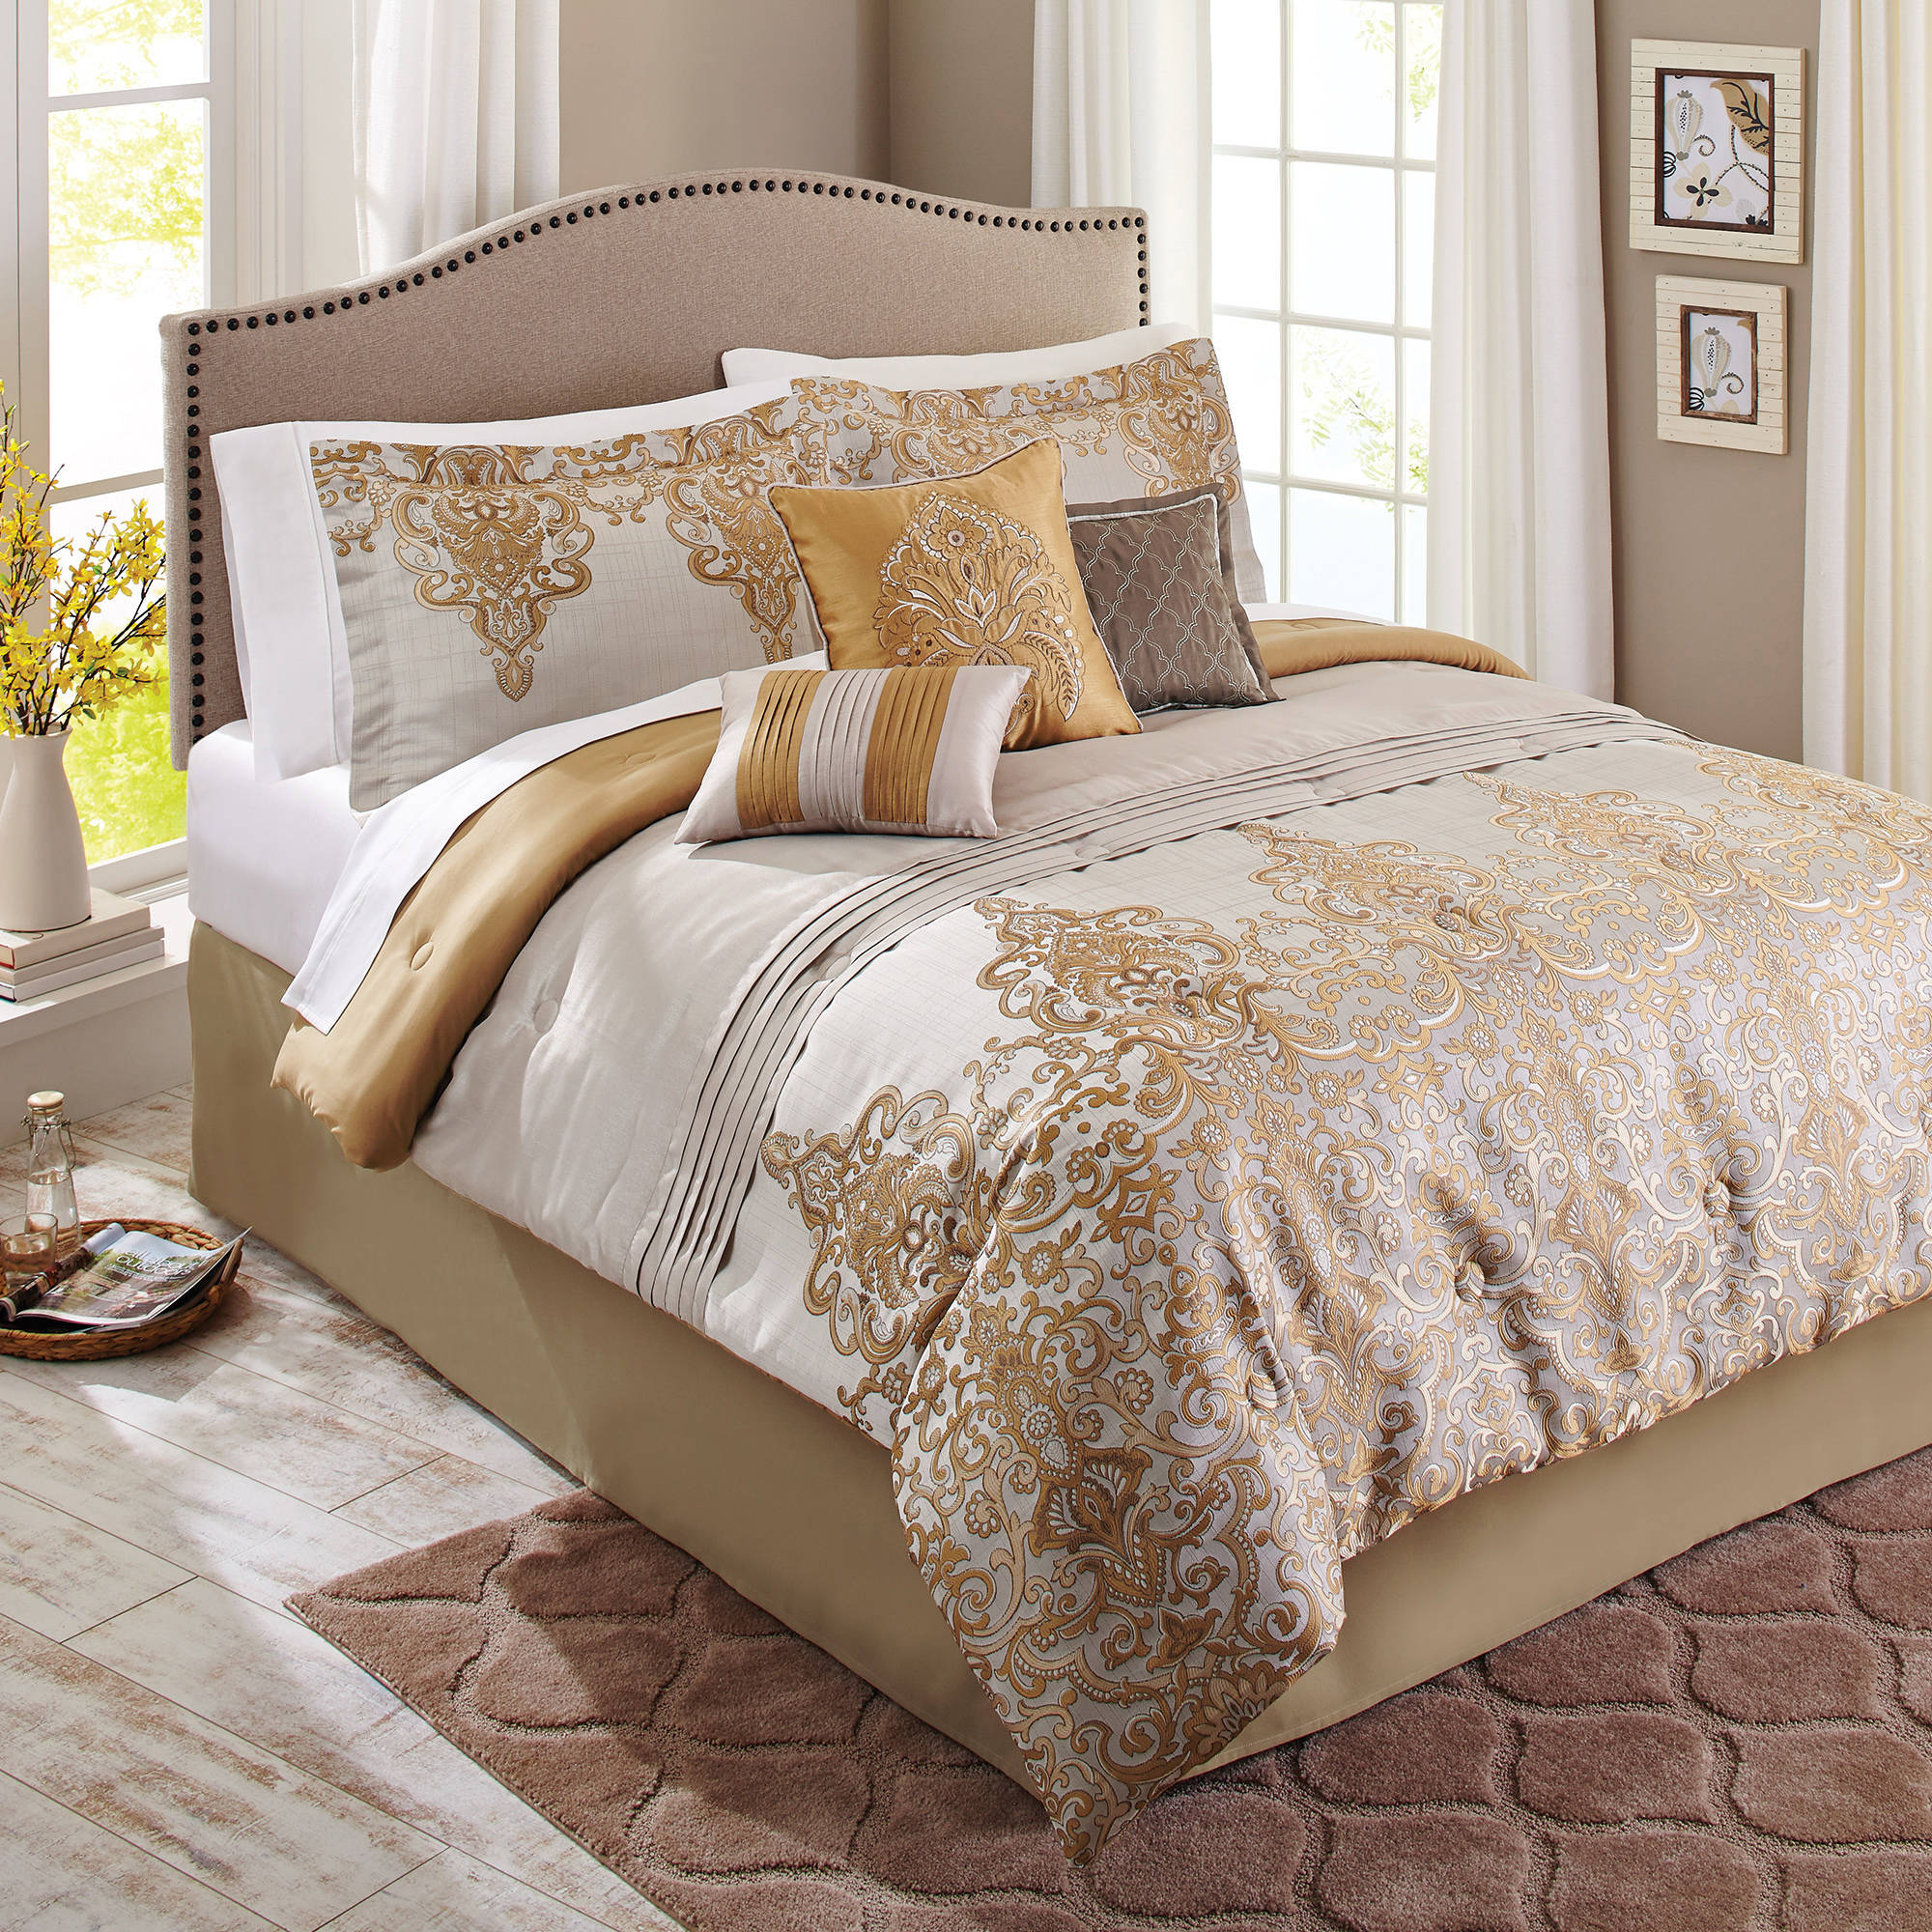 Better Homes and Gardens 7 Piece Bedding forter Set Gold Accent